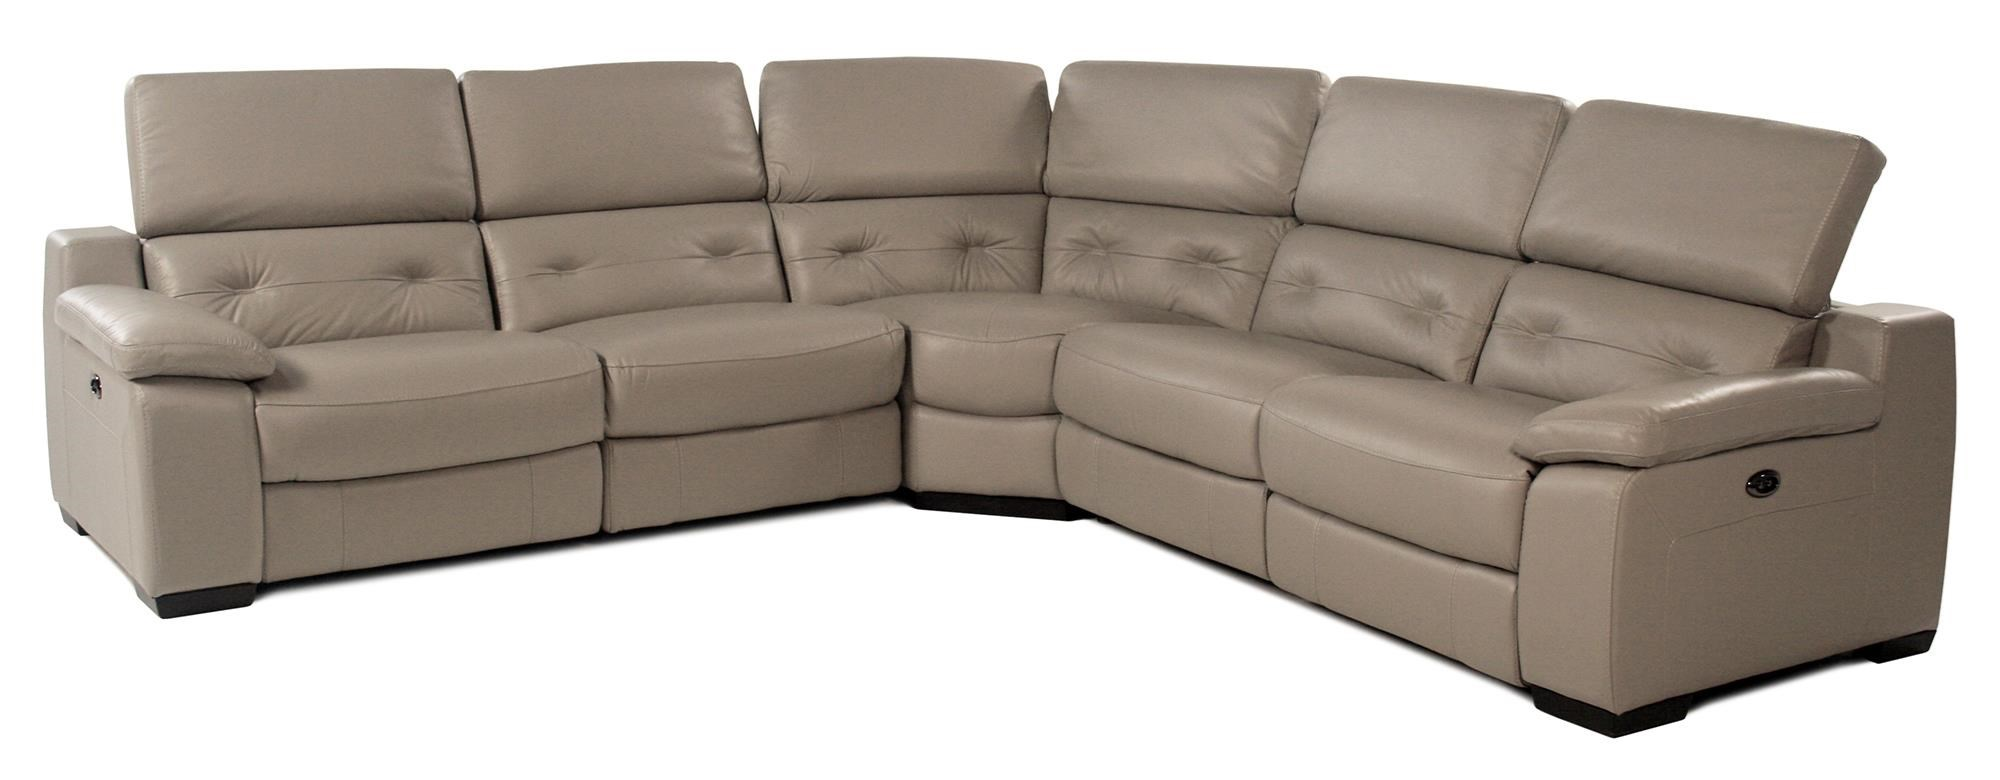 Giovani Cassandra 5PC Power Reclining Leather Sectional - Item Number: RS-10981-5PC-PRS